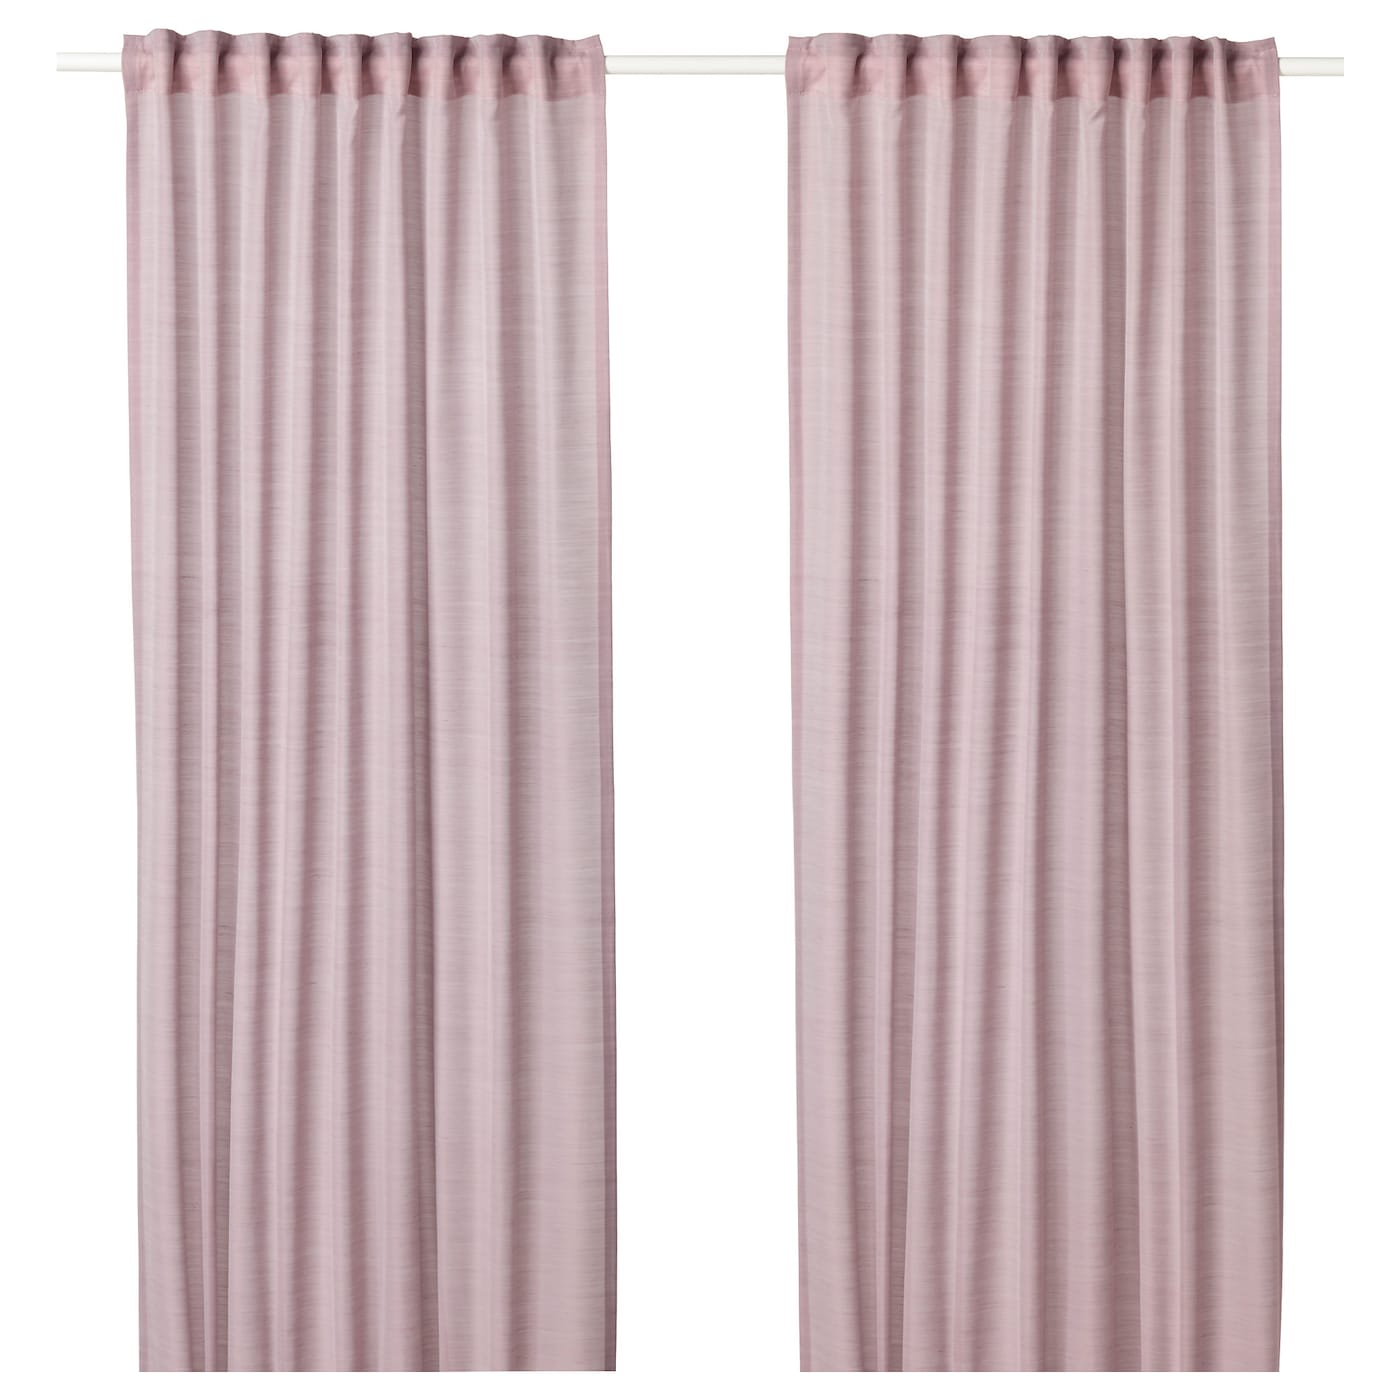 curtains muji dusty mix home aurora sheer match amp blackout rose and inch curtain